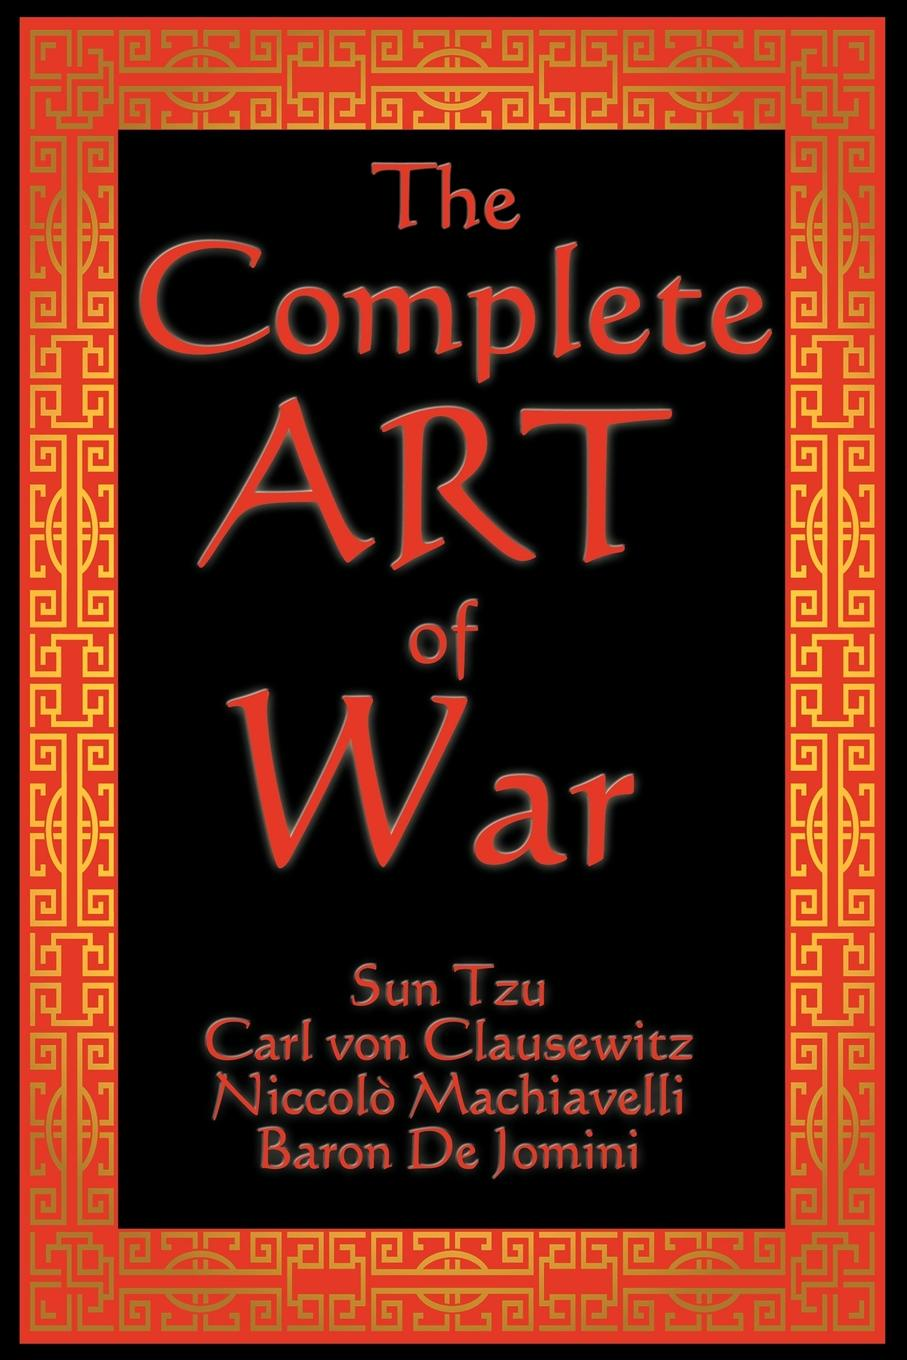 Sun Tzu, Carl Von Clausewitz, Niccolo Machiavelli The Complete Art of War